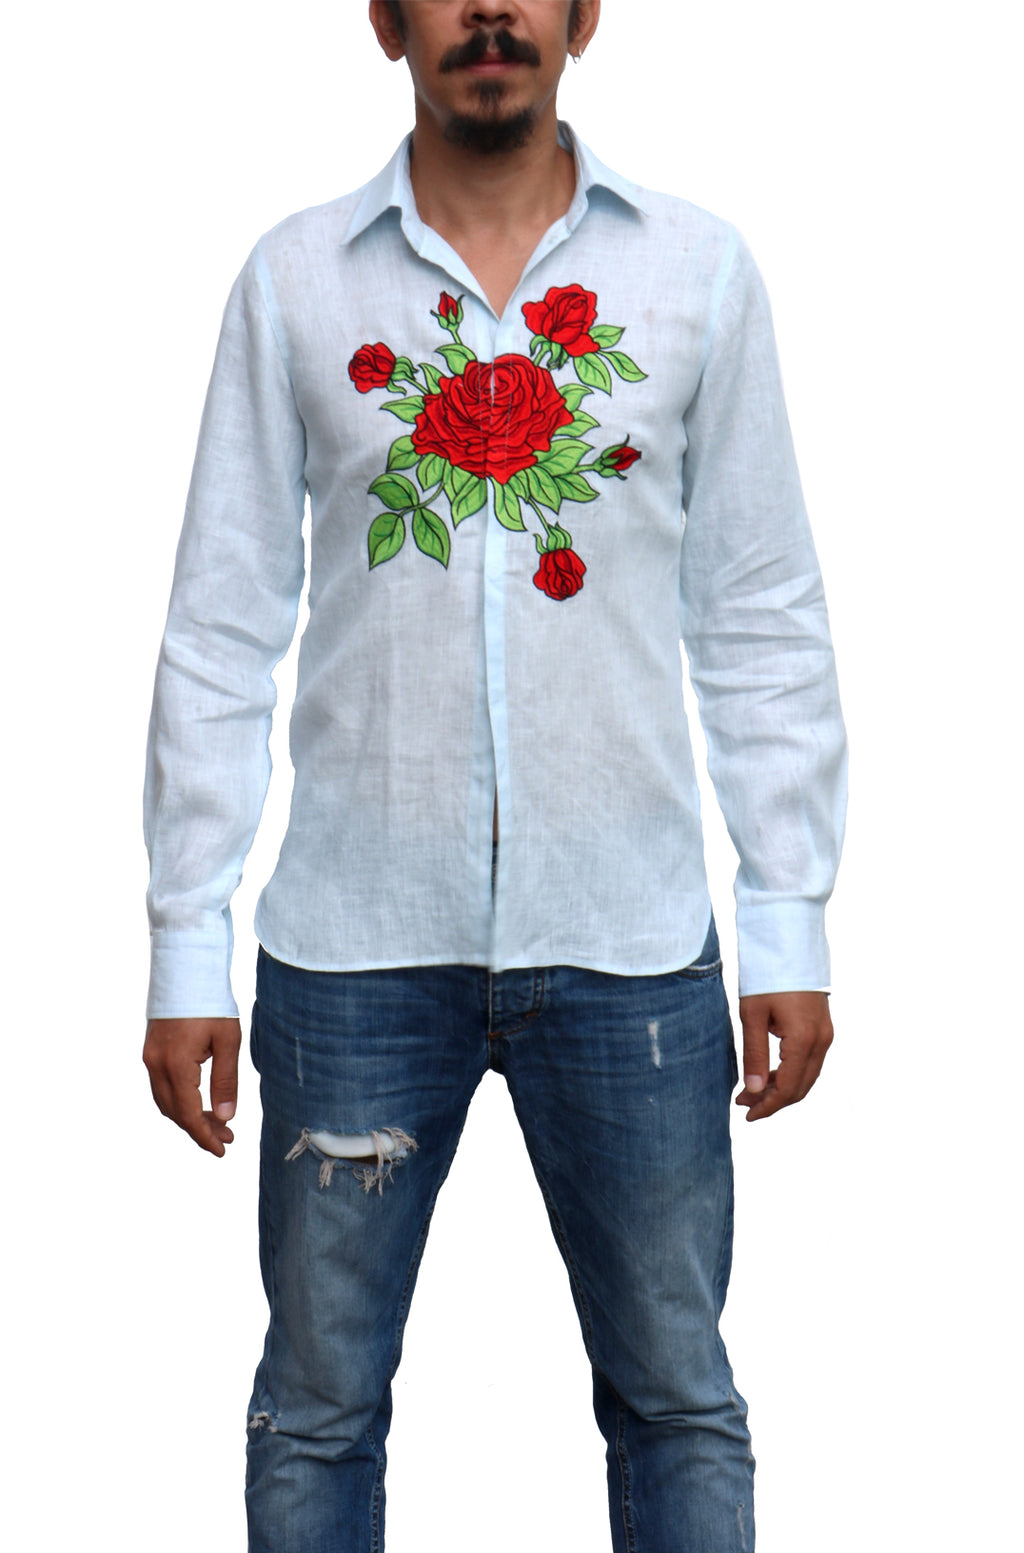 Fanm Mon ACTIVE Blue Linen Men Shirt Rose Embroidery